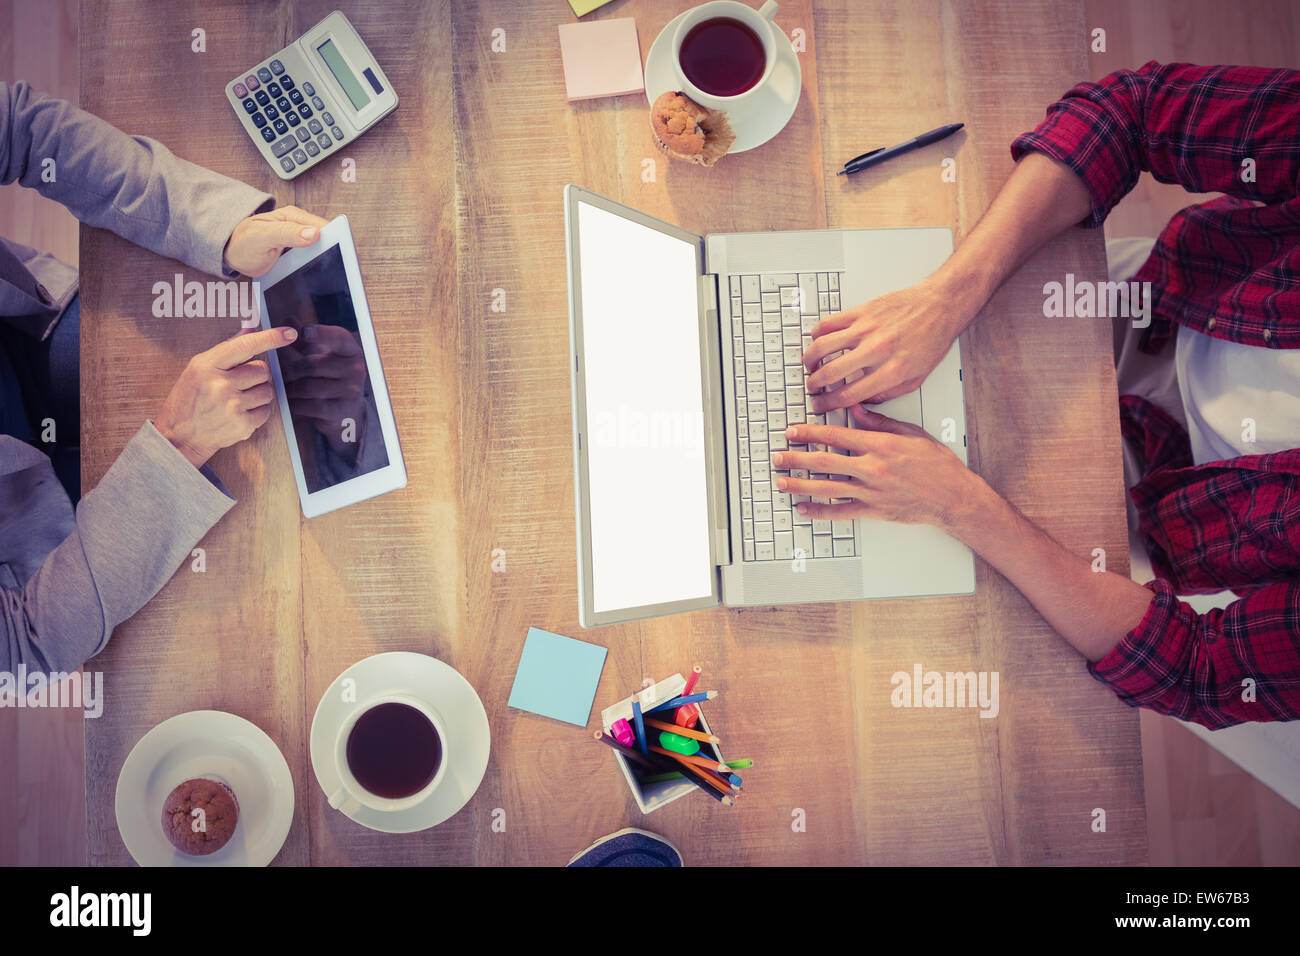 Creative businessmen working on electronic devices - Stock Image